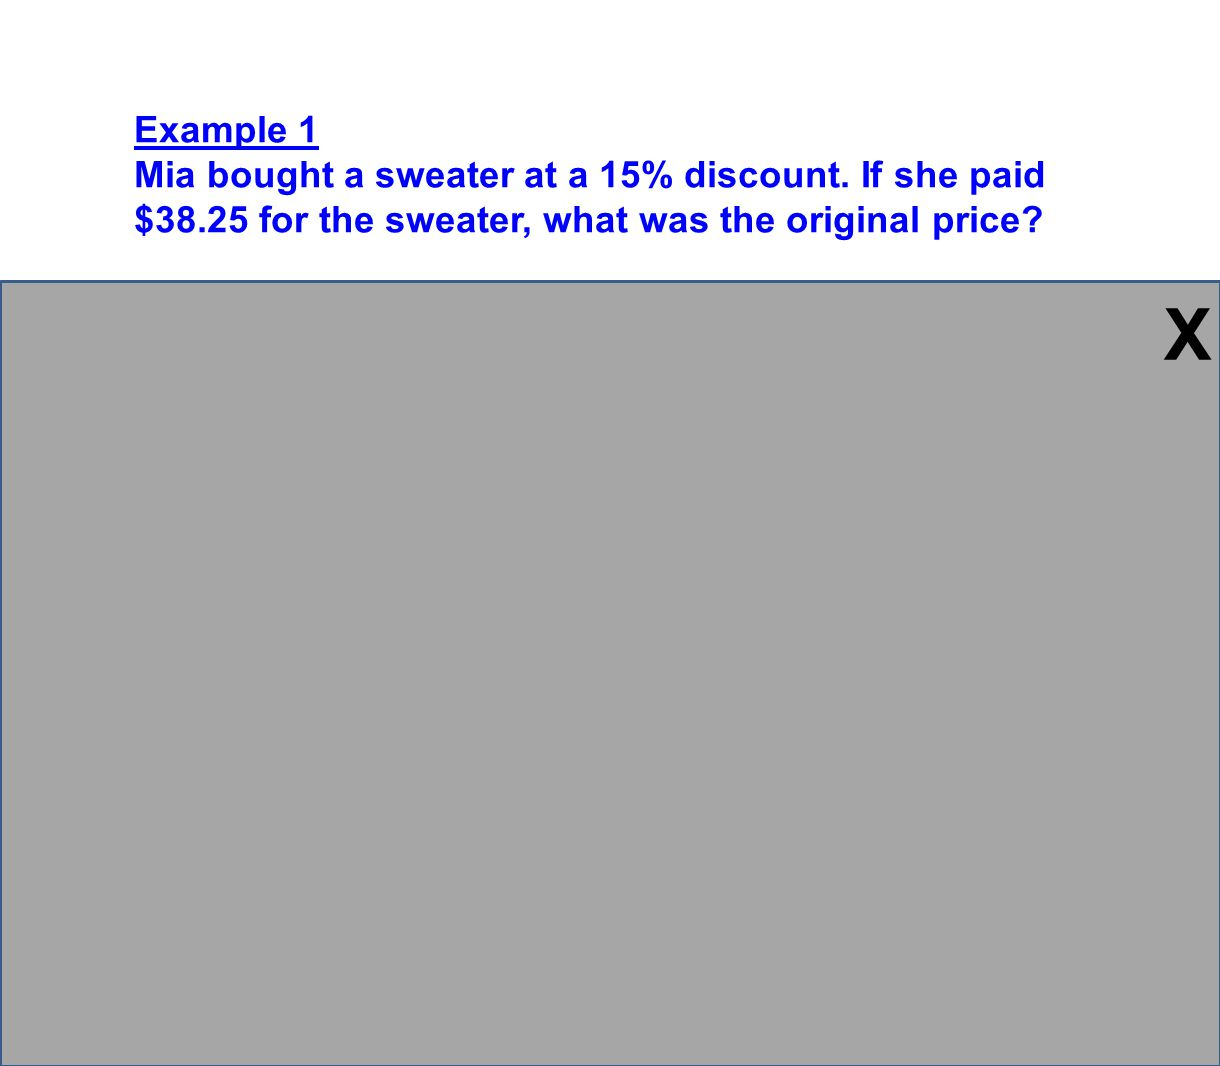 Example 1 Mia bought a sweater at a 15% discount. If she paid $38.25 for the sweater, what was the original price? Plan: Find the original price of th